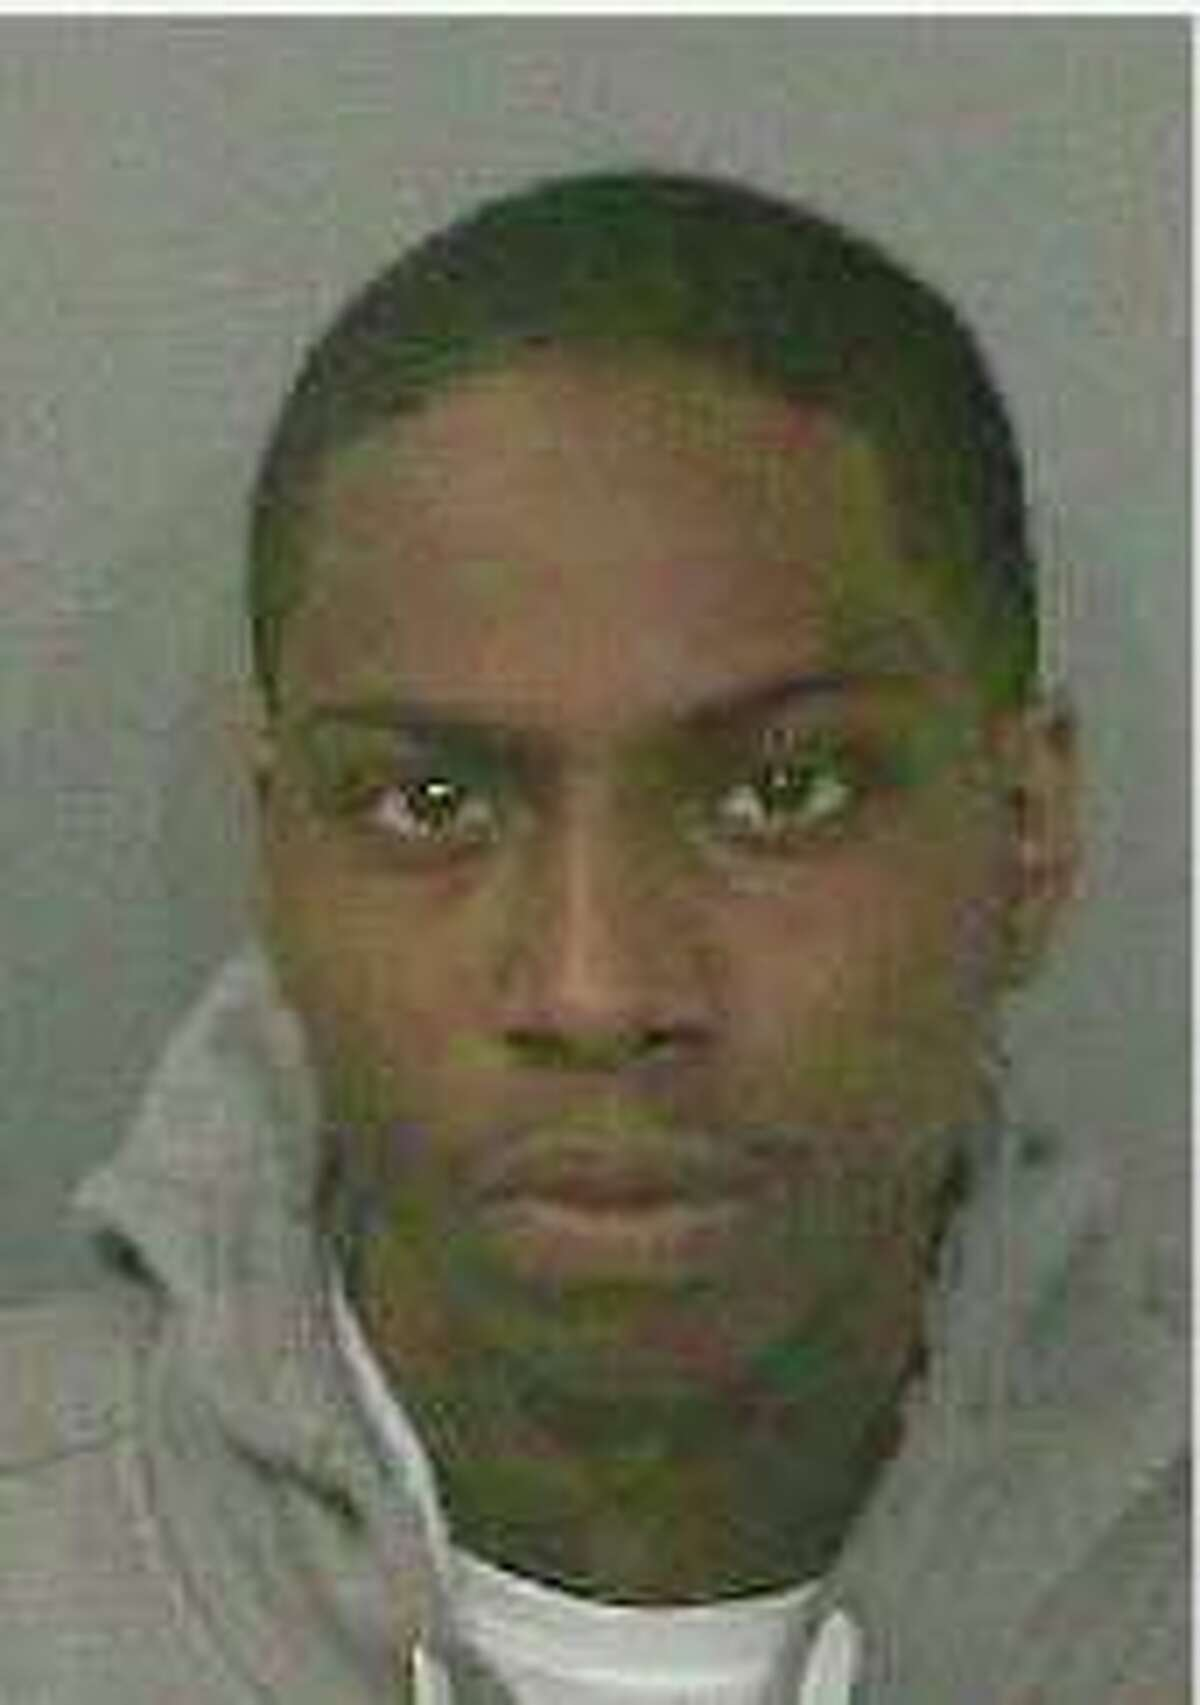 Dawaun Rice, 19, was charged with the murder of 29-year-old Javonte Prothro.